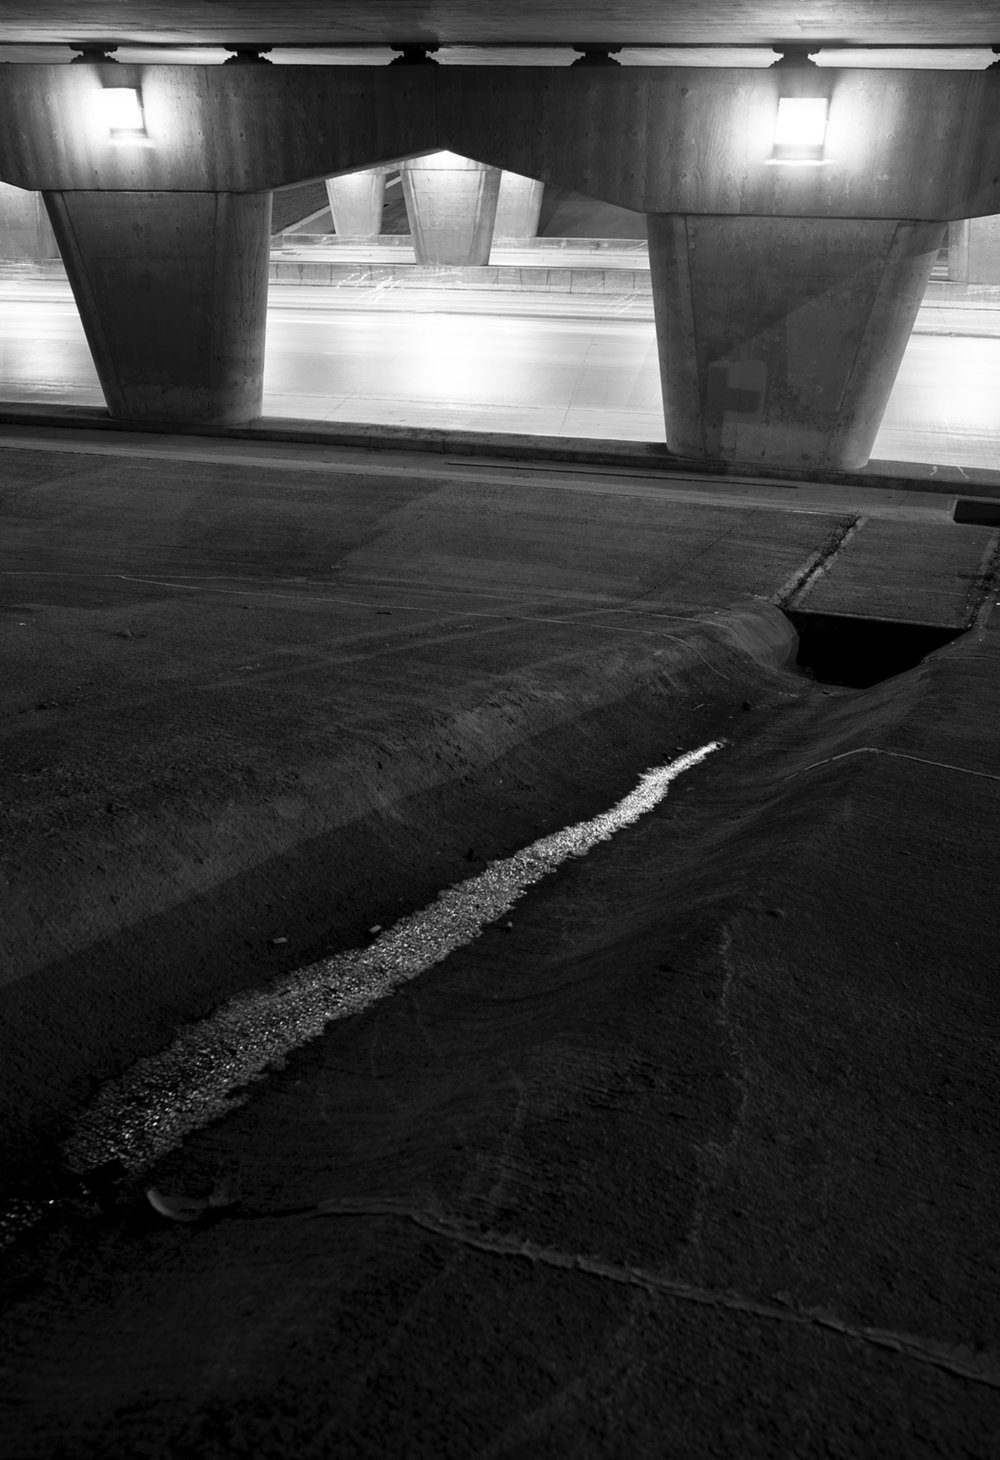 Under The Bridge By: Robert Lowdon Photograph of a rainy night under the Bishop Grandin bridge.